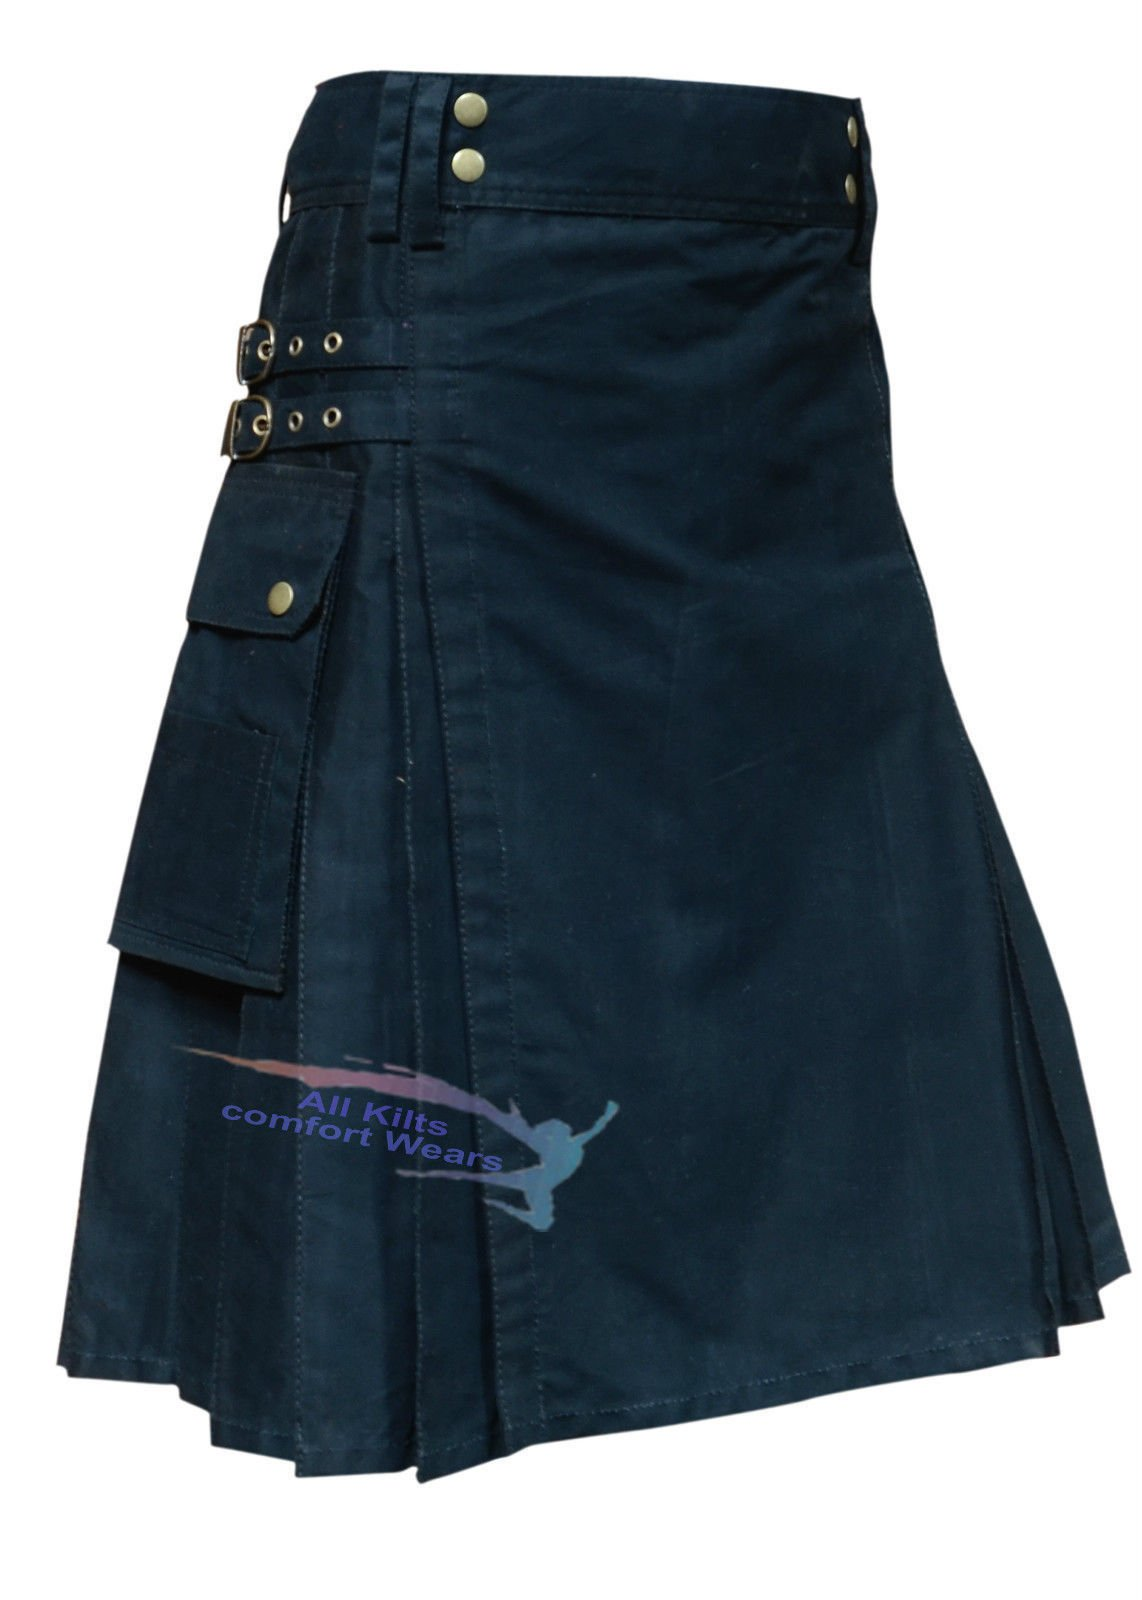 New Men Fashion Kilt Utility Kilt For The Active Men And Wedding Kilt (34)